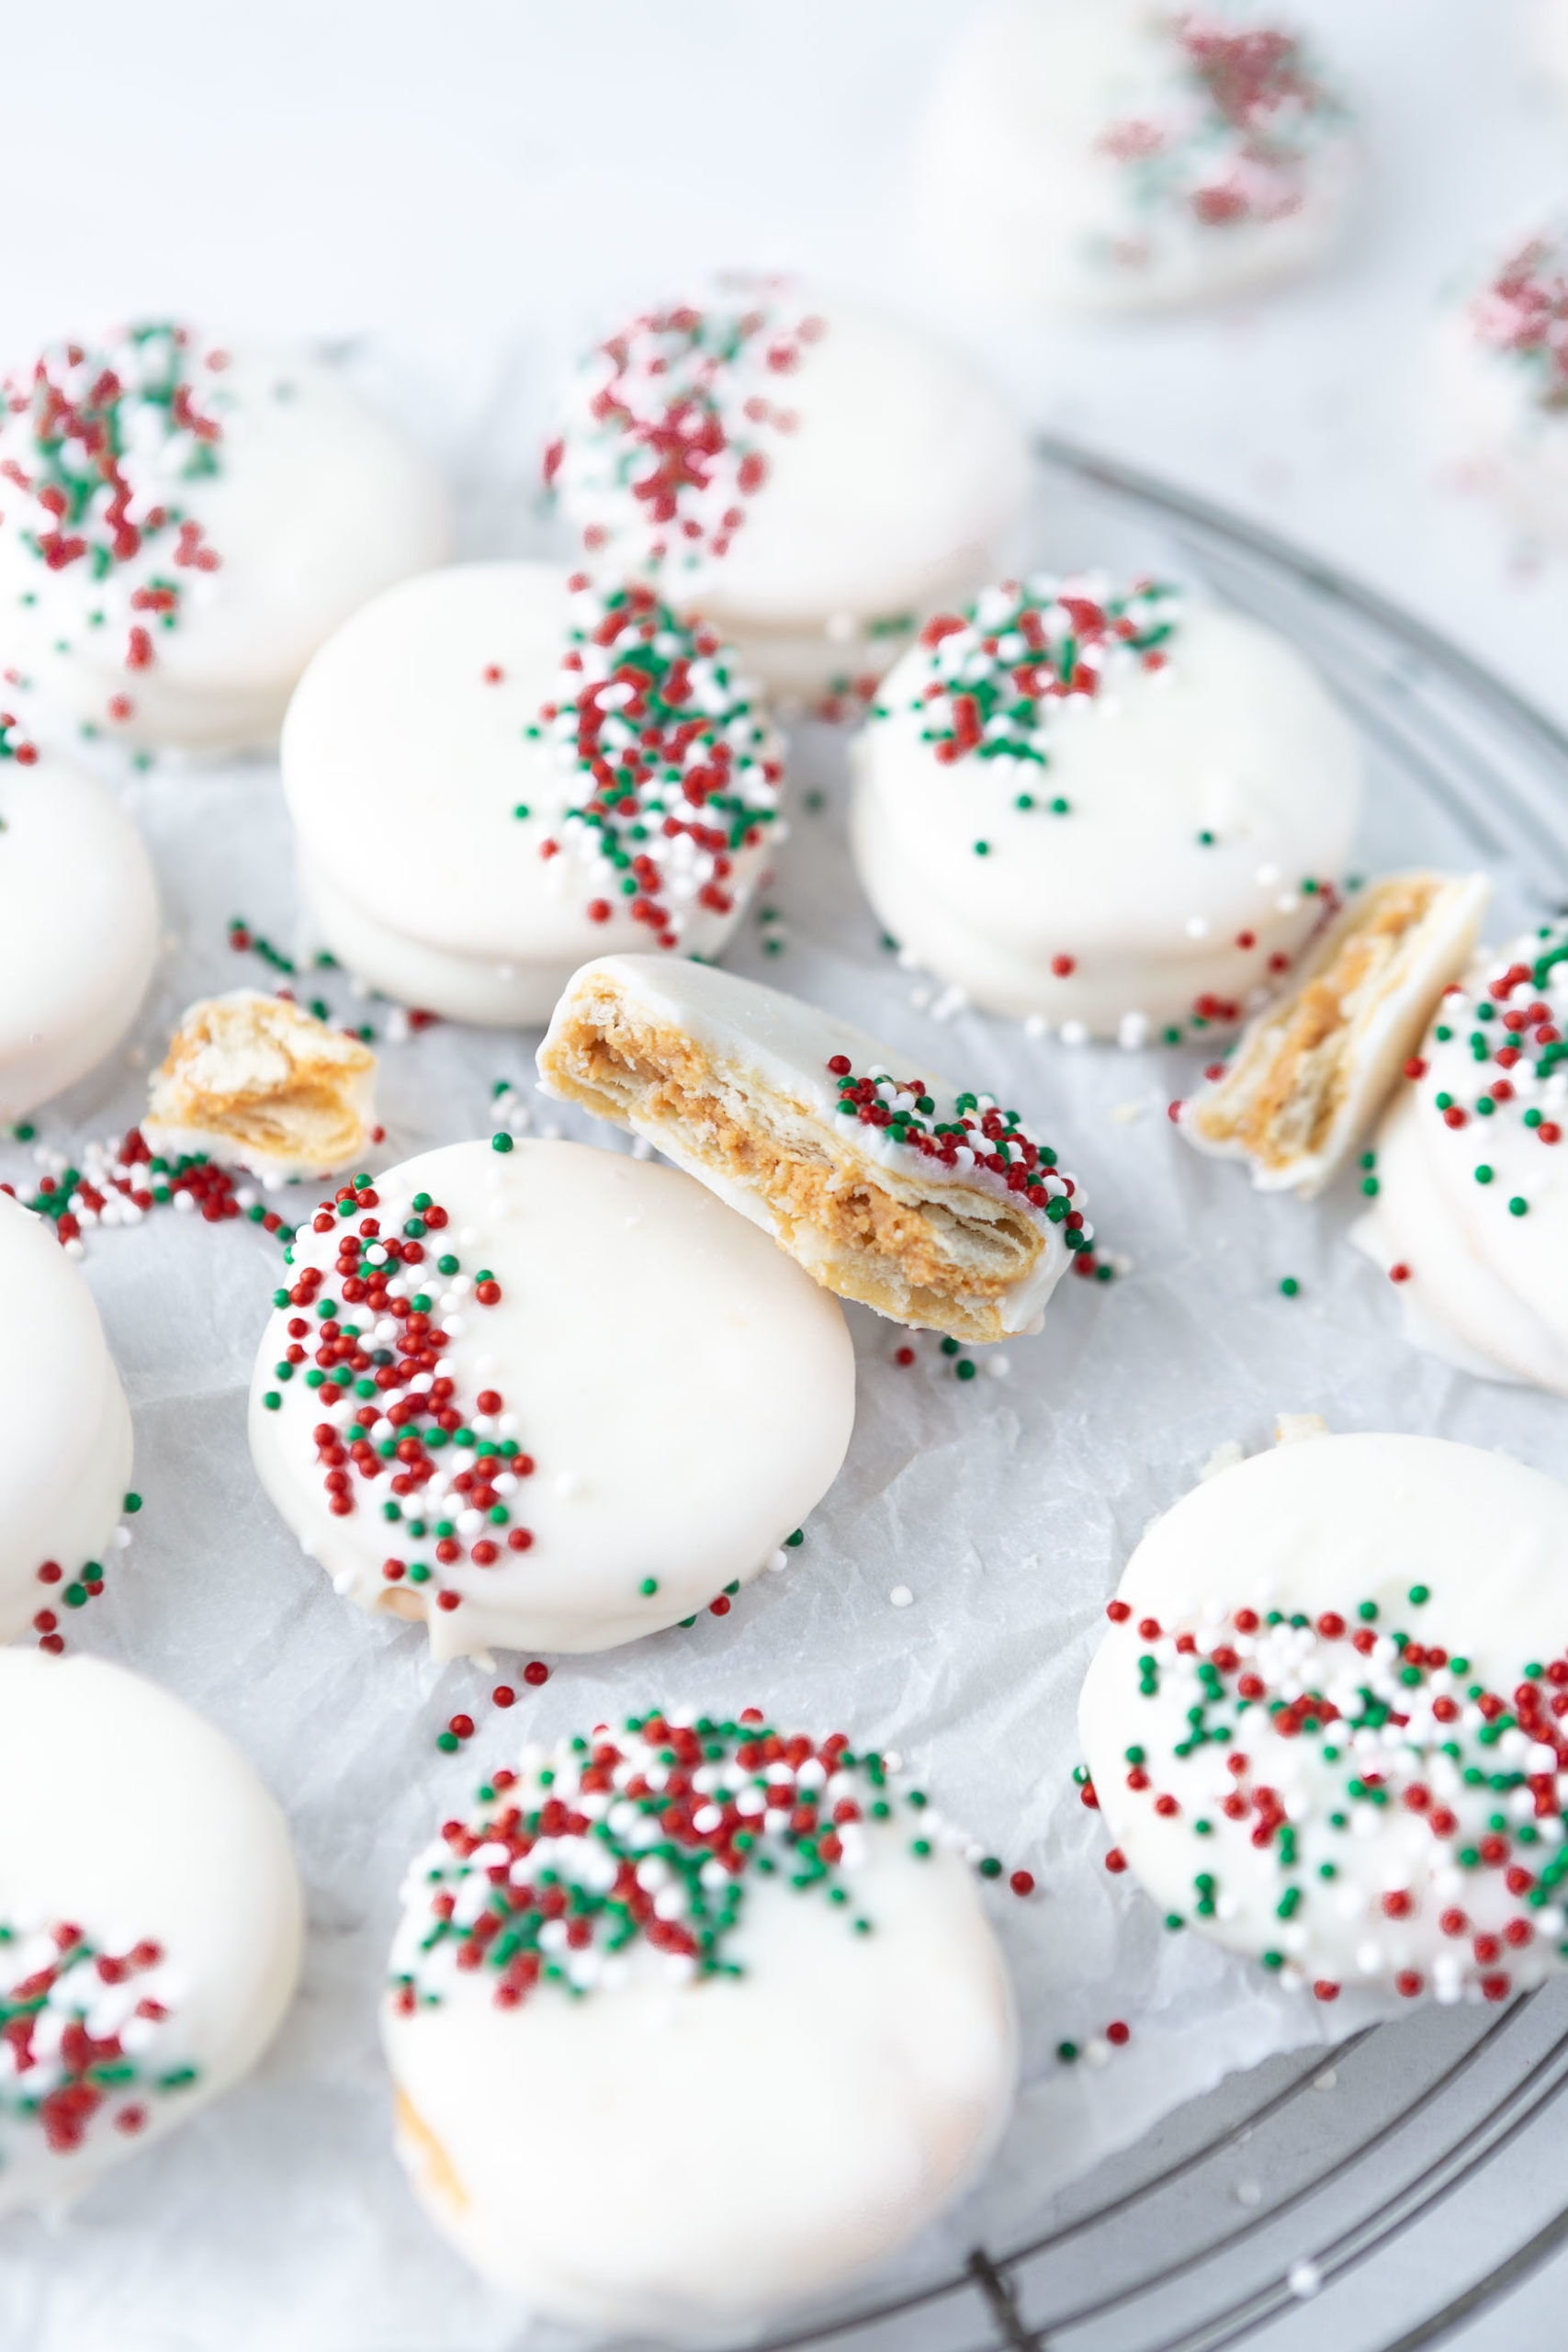 the easiest kid friendly holiday candy to make, peanut butter filled ritz crackers then dipped in white chocolate and sprinkles!